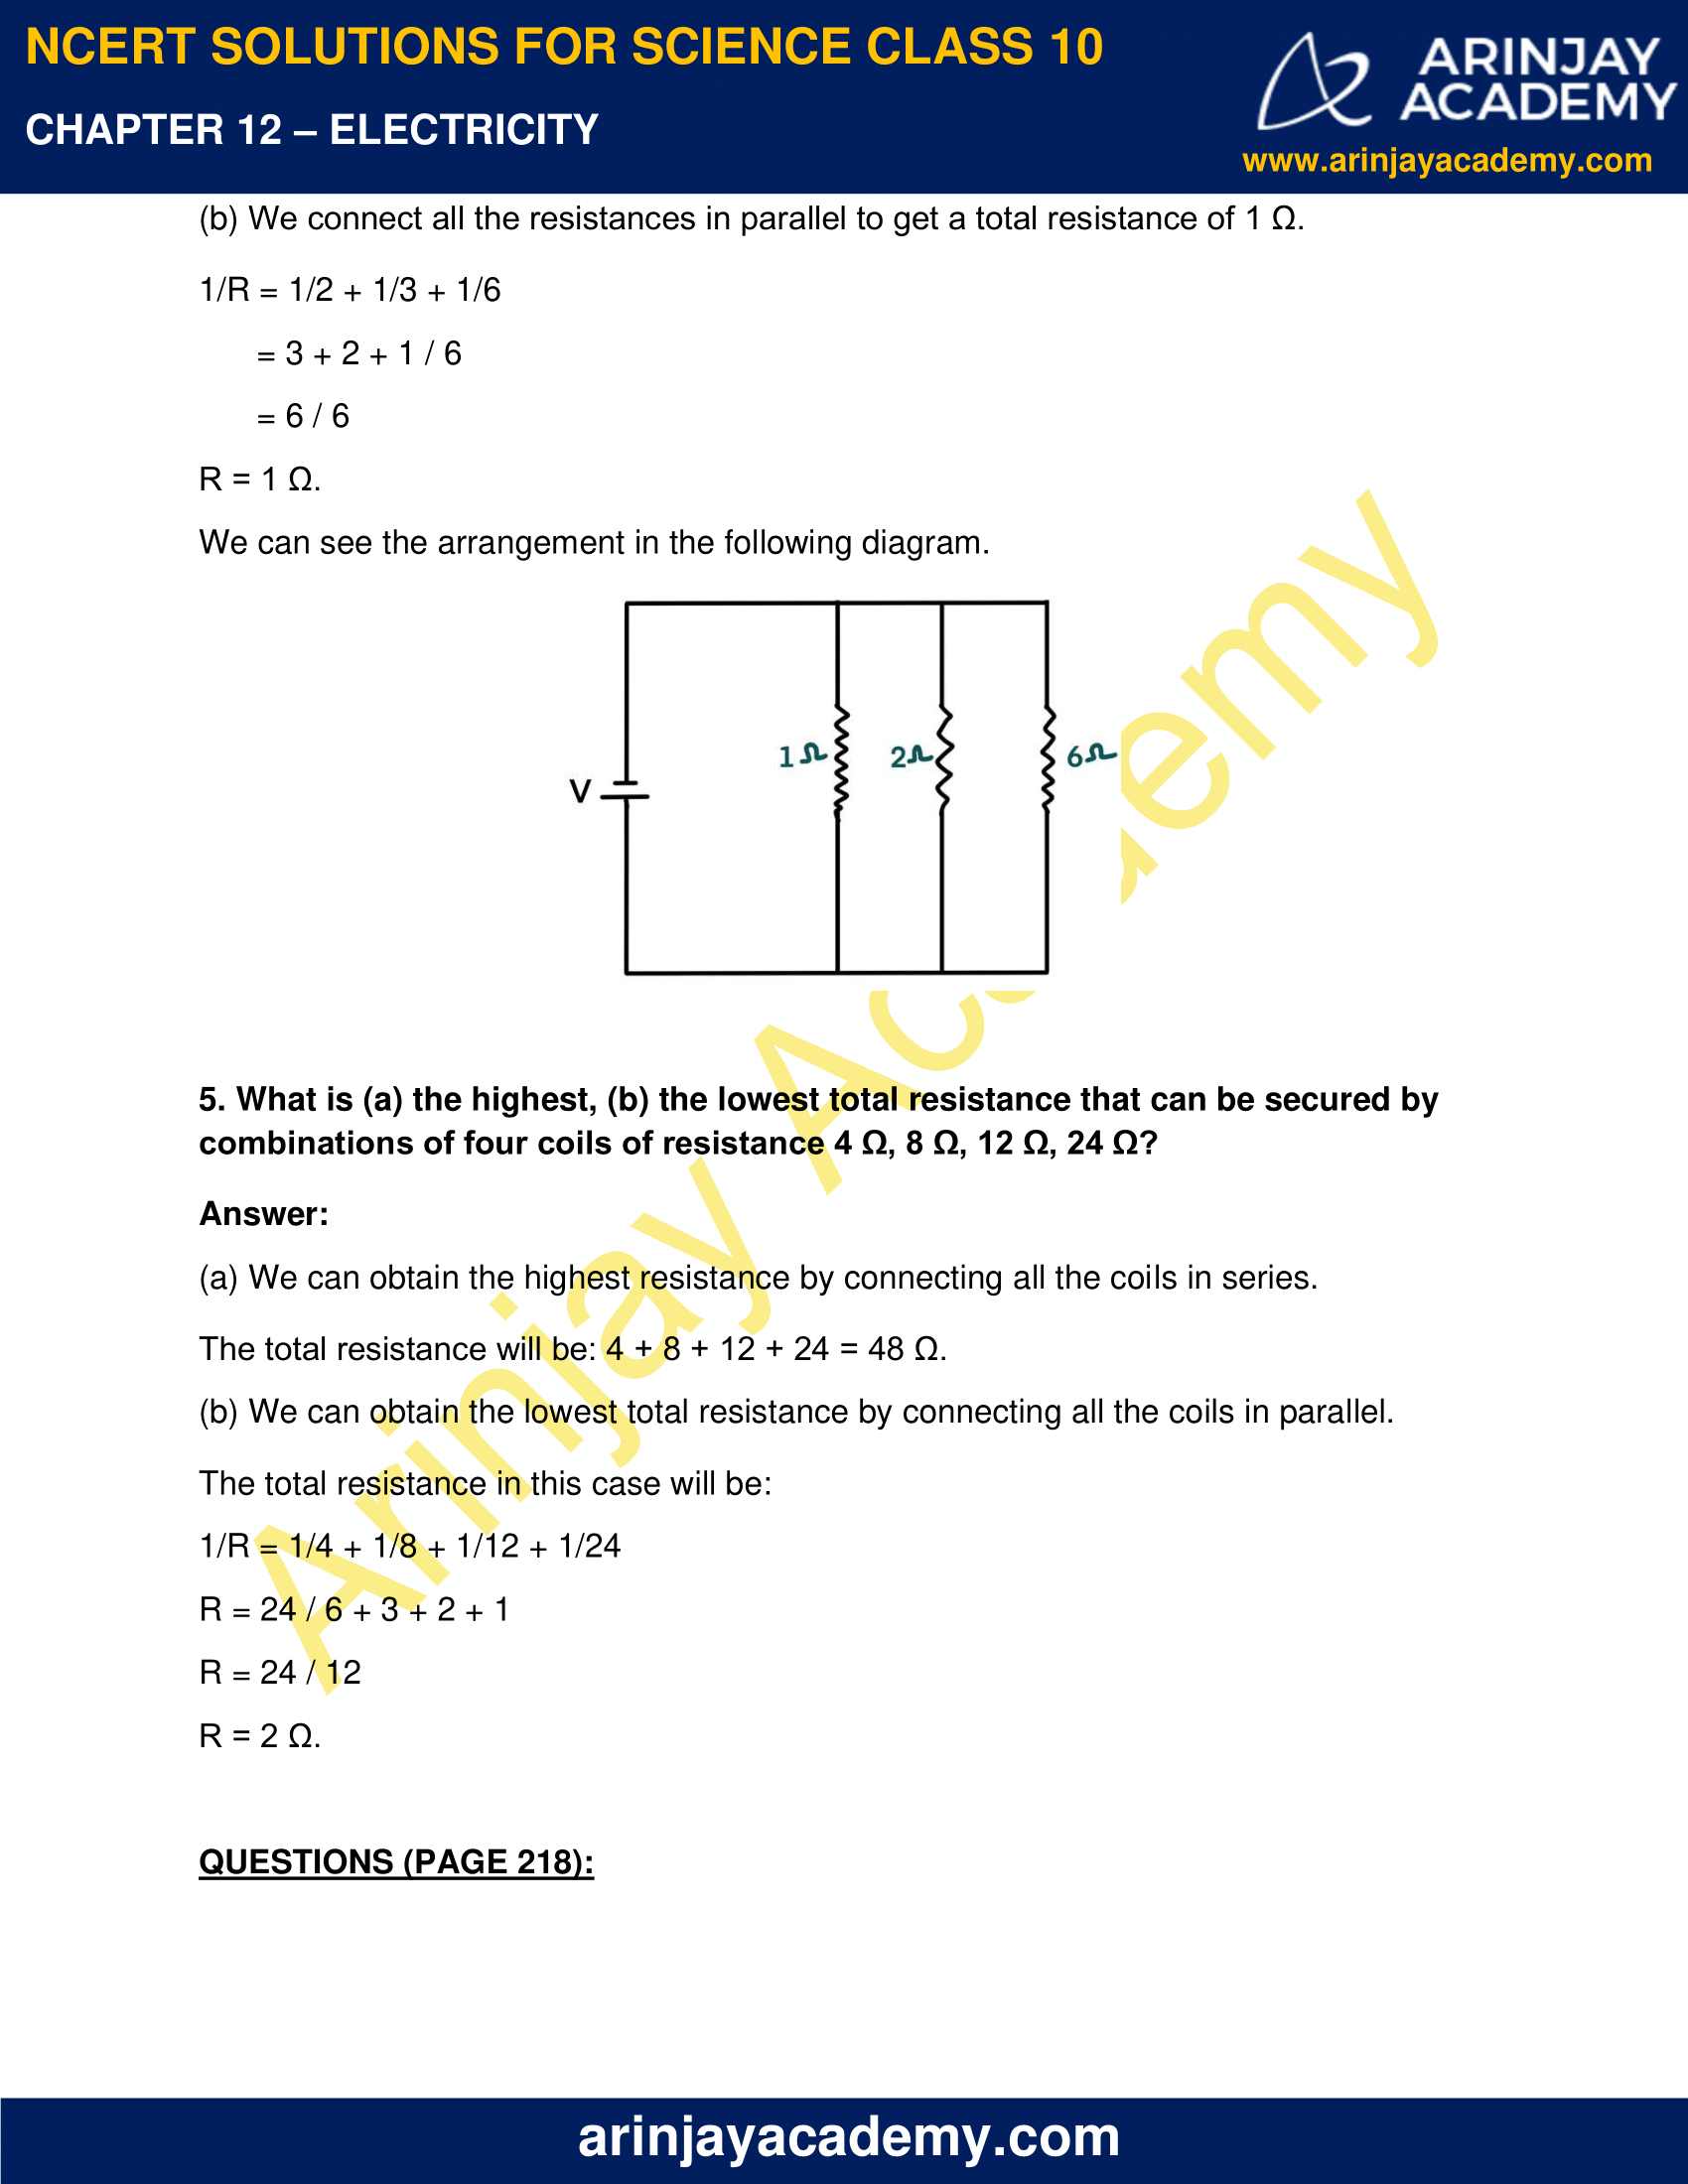 NCERT Solutions for Class 10 Science Chapter 12 Electricity image 10